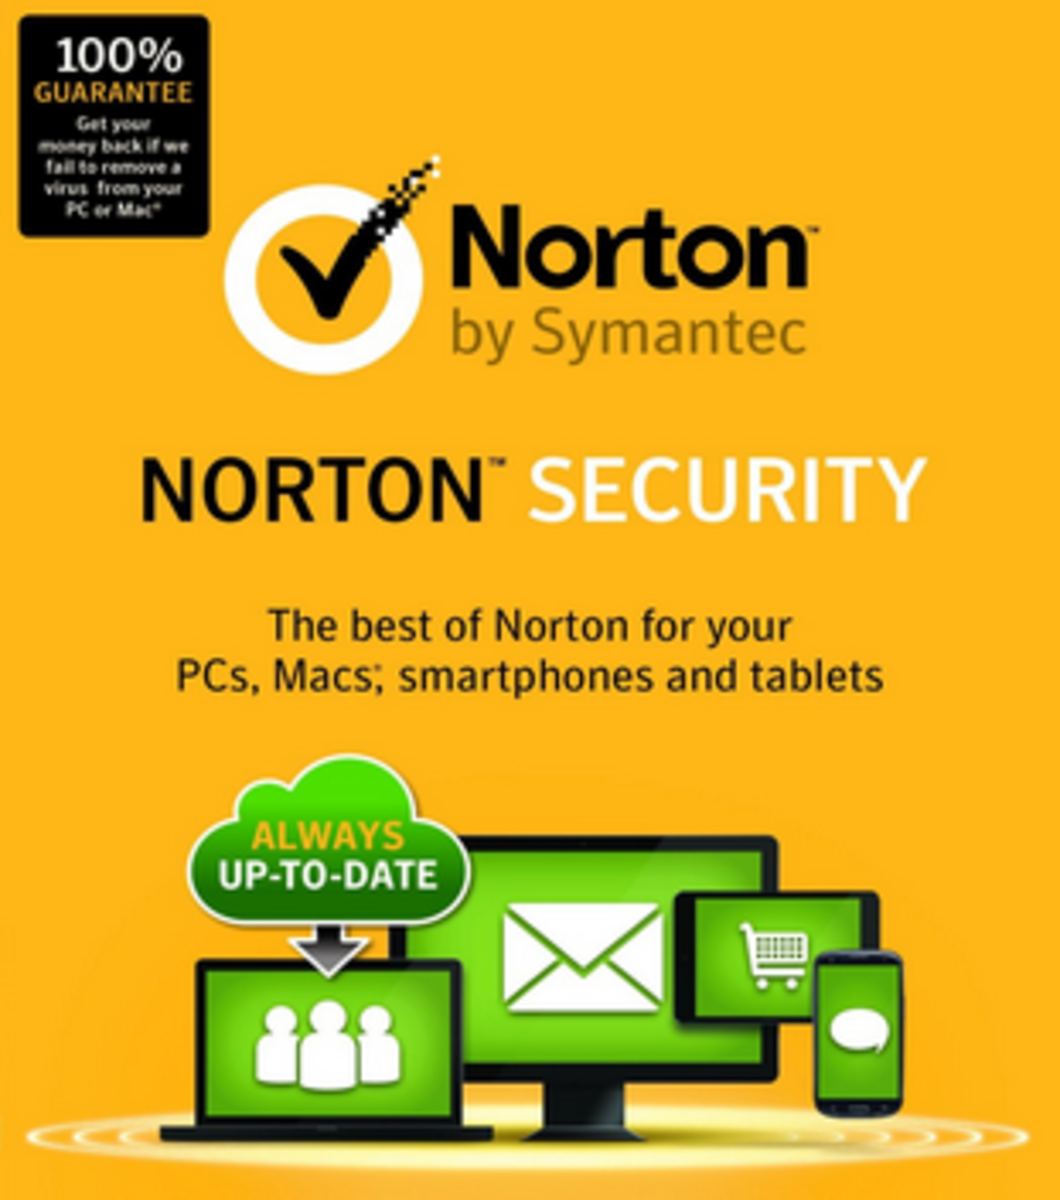 Norton Security product images and screenshots used with permission